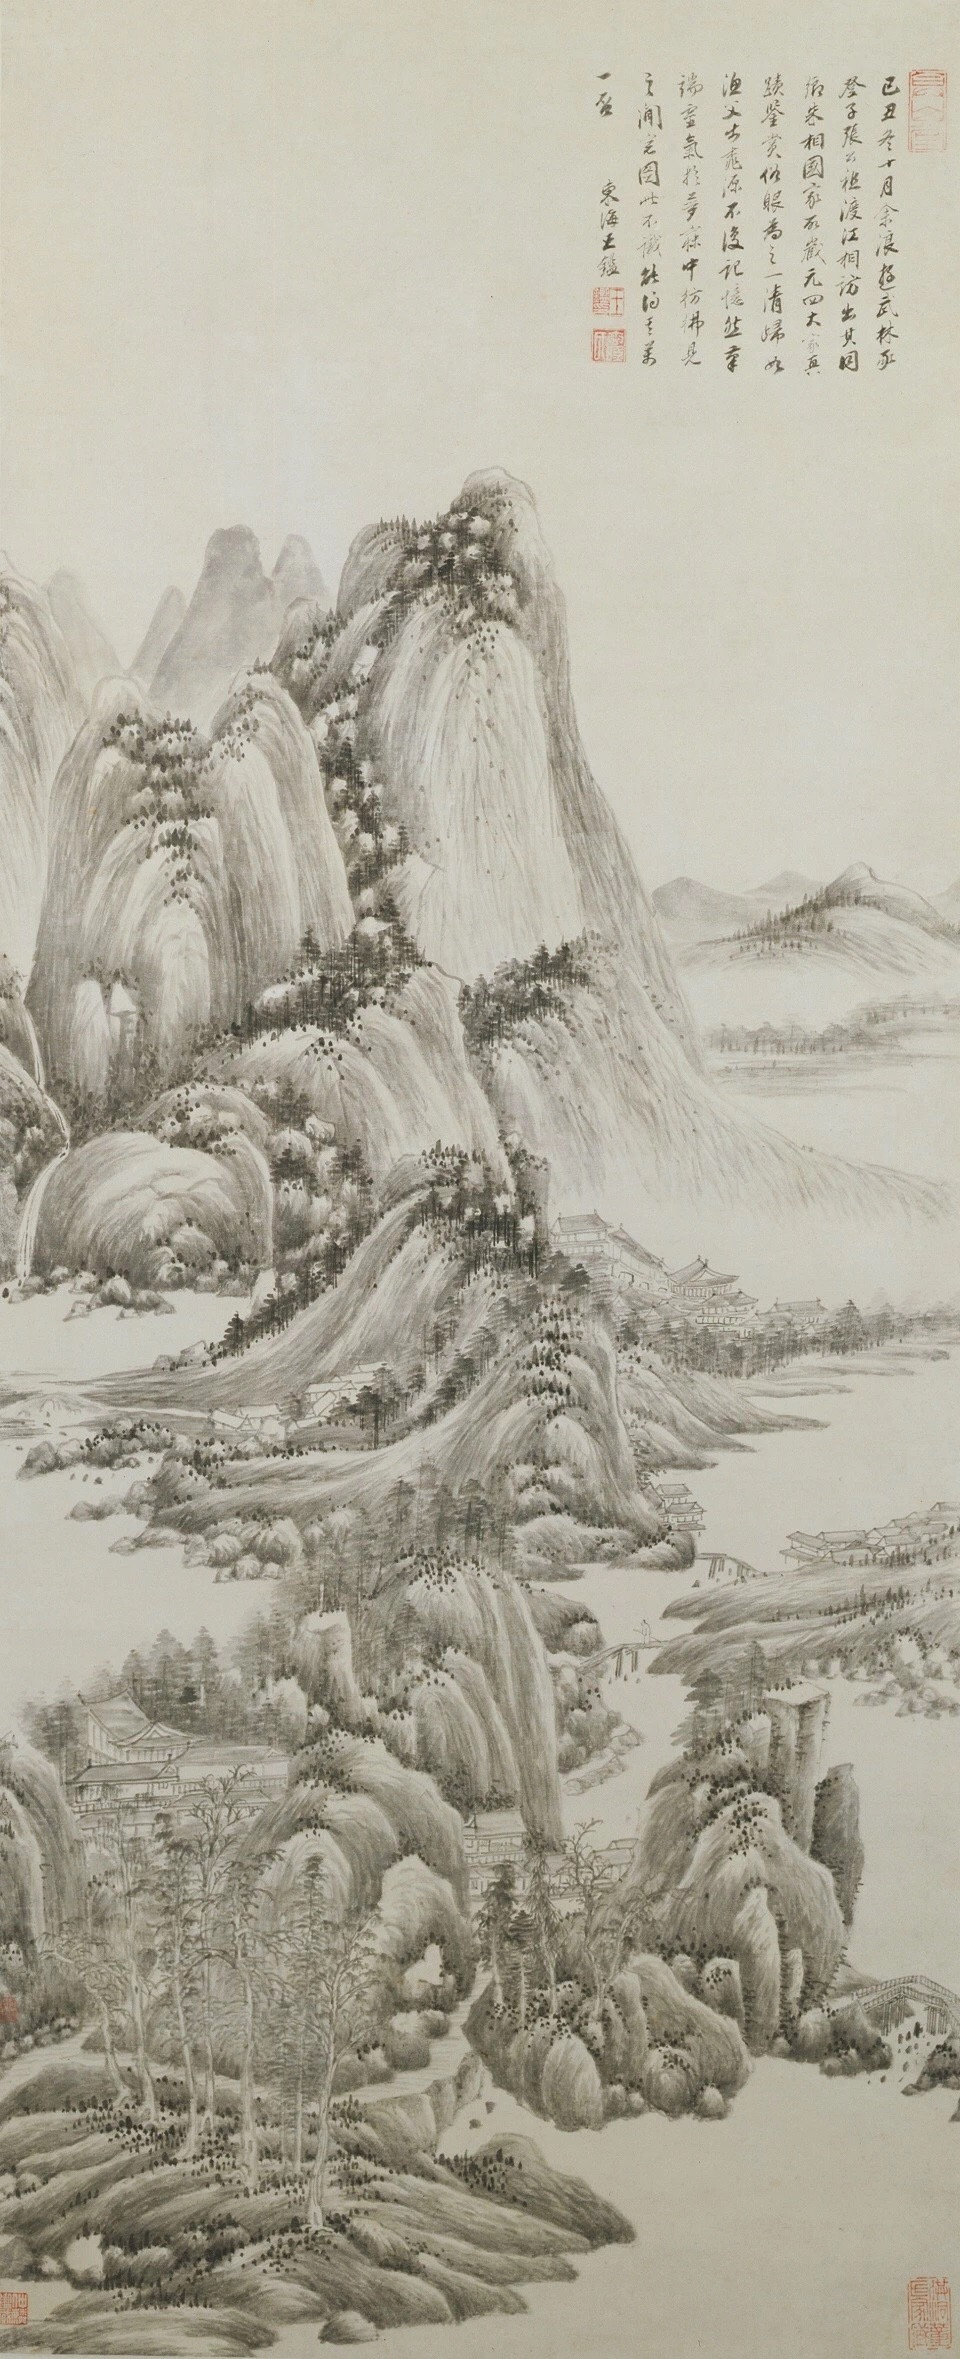 Wang Jian: After the Spirit of the Four Yuan Masters